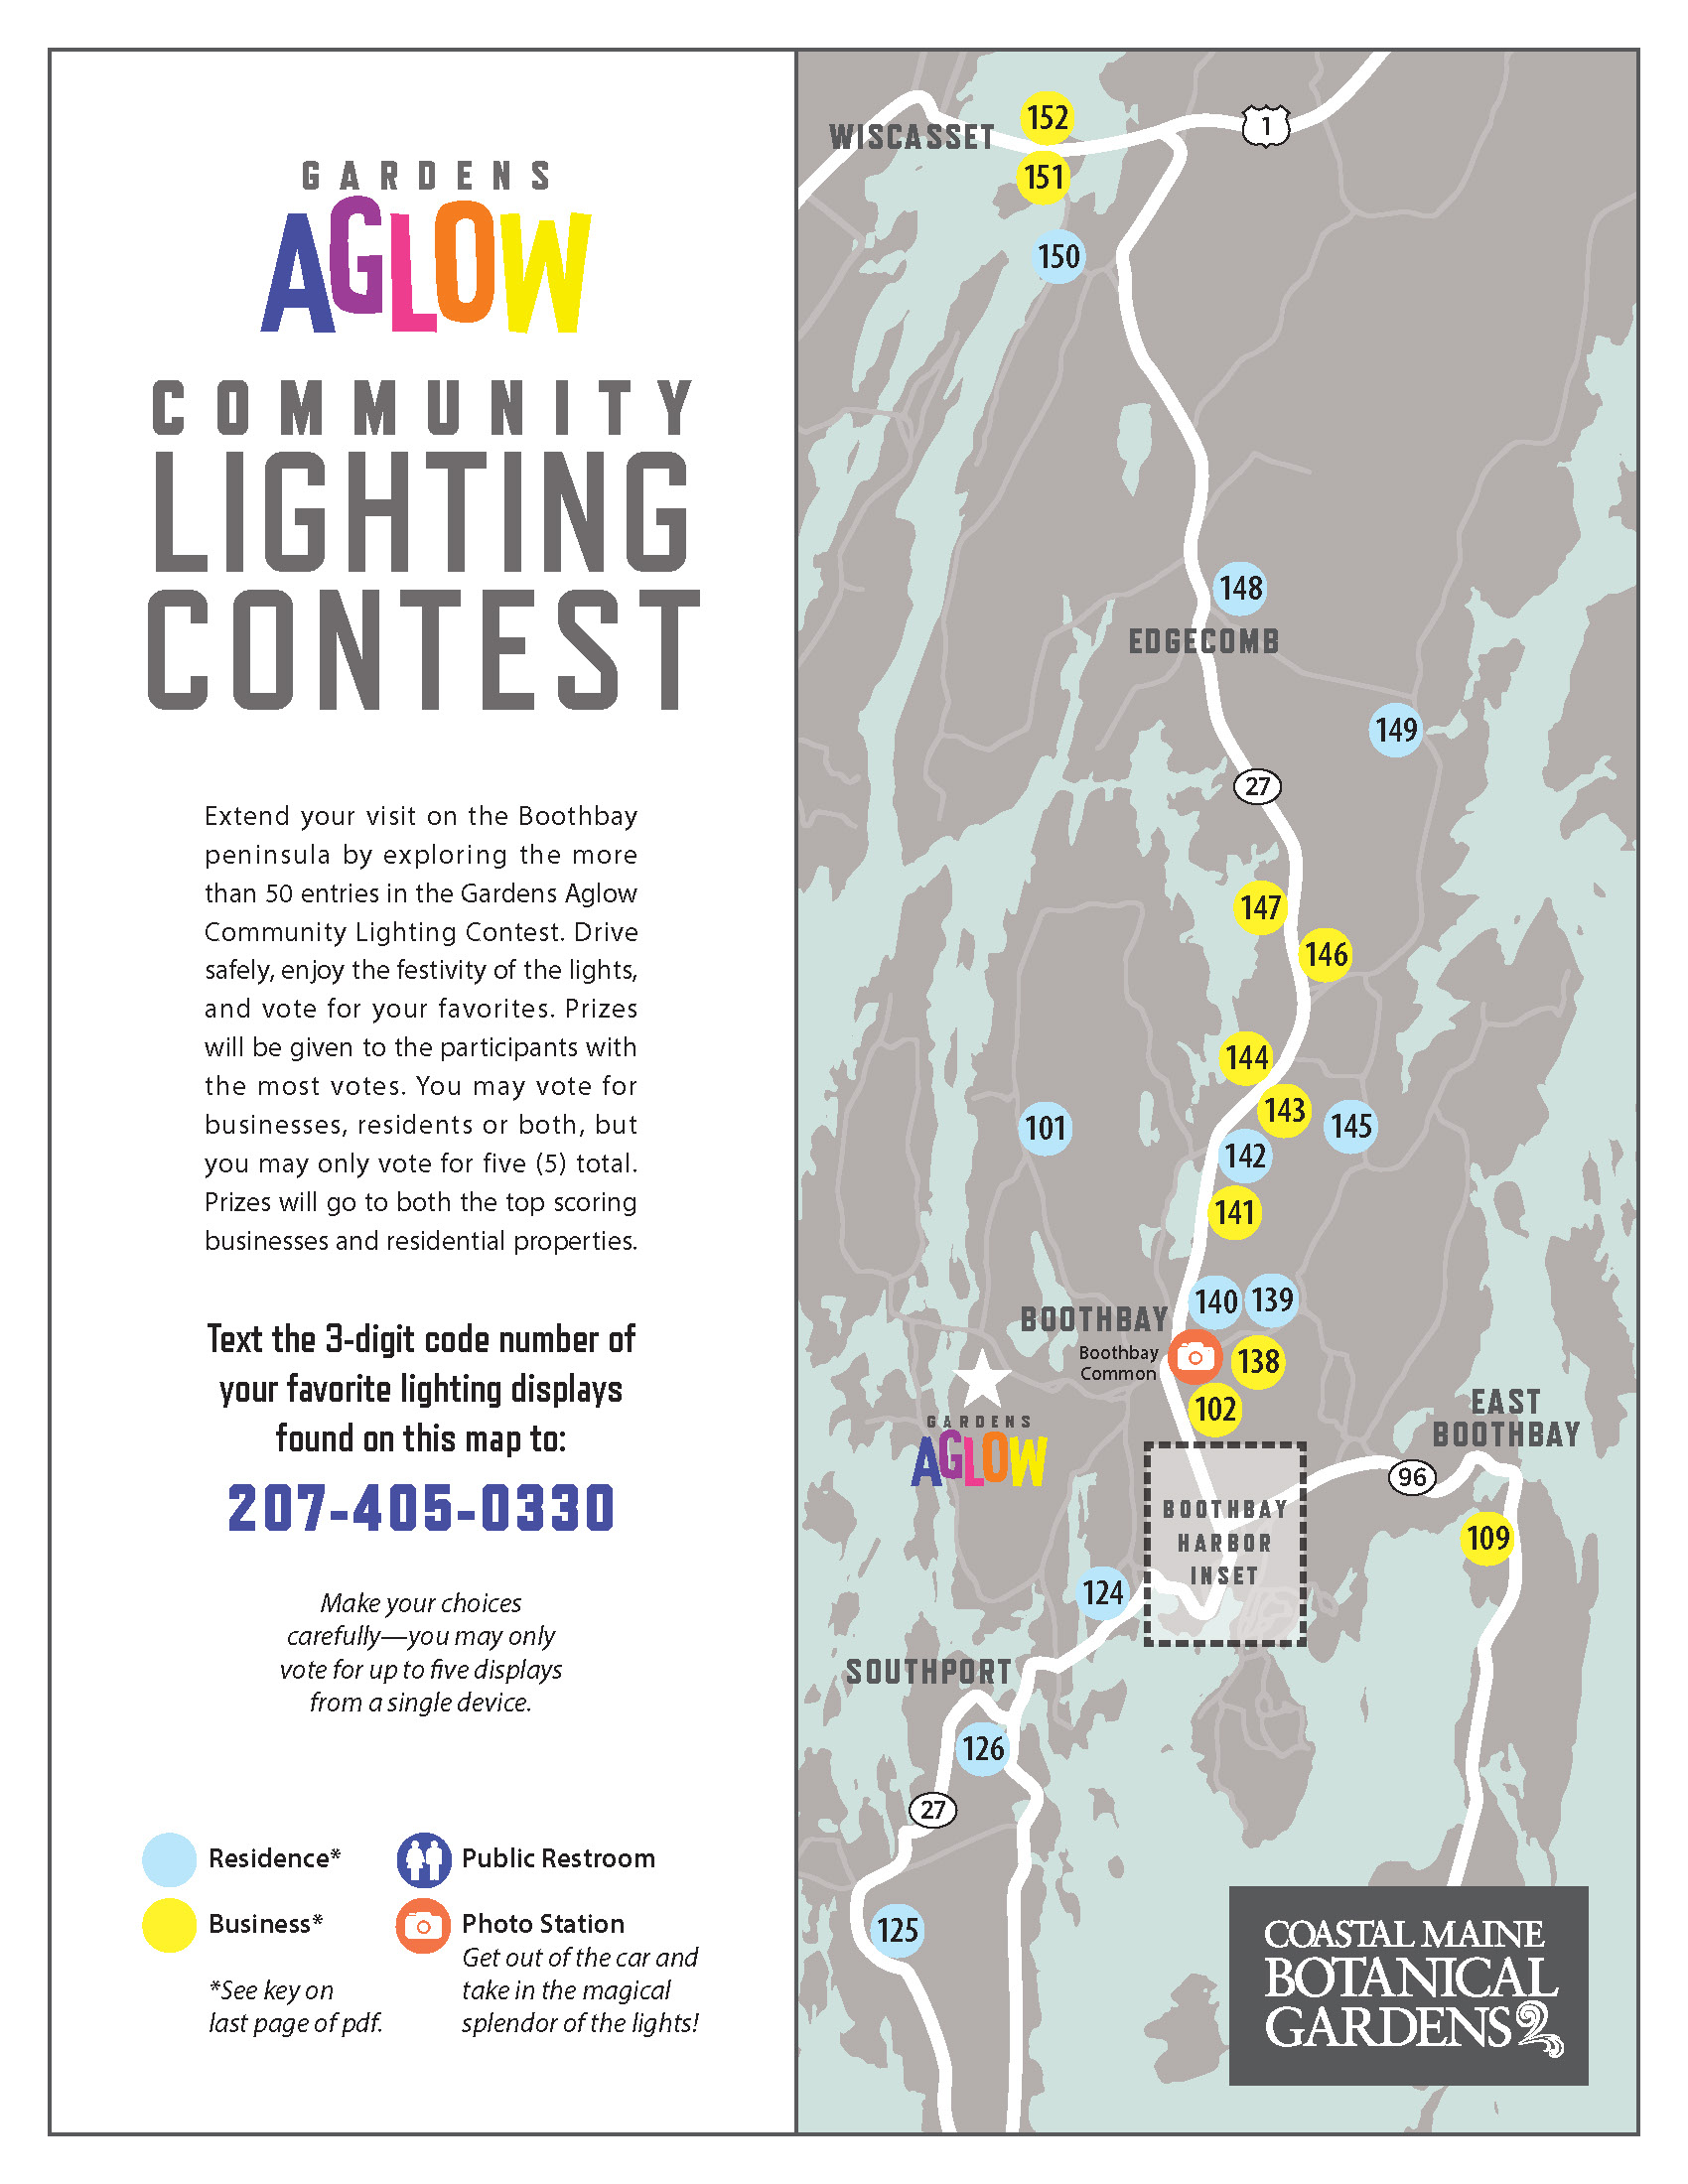 Community Lighting Contest Map. Text 207-405-0330 with the 3-digit code of your favorites to vote.